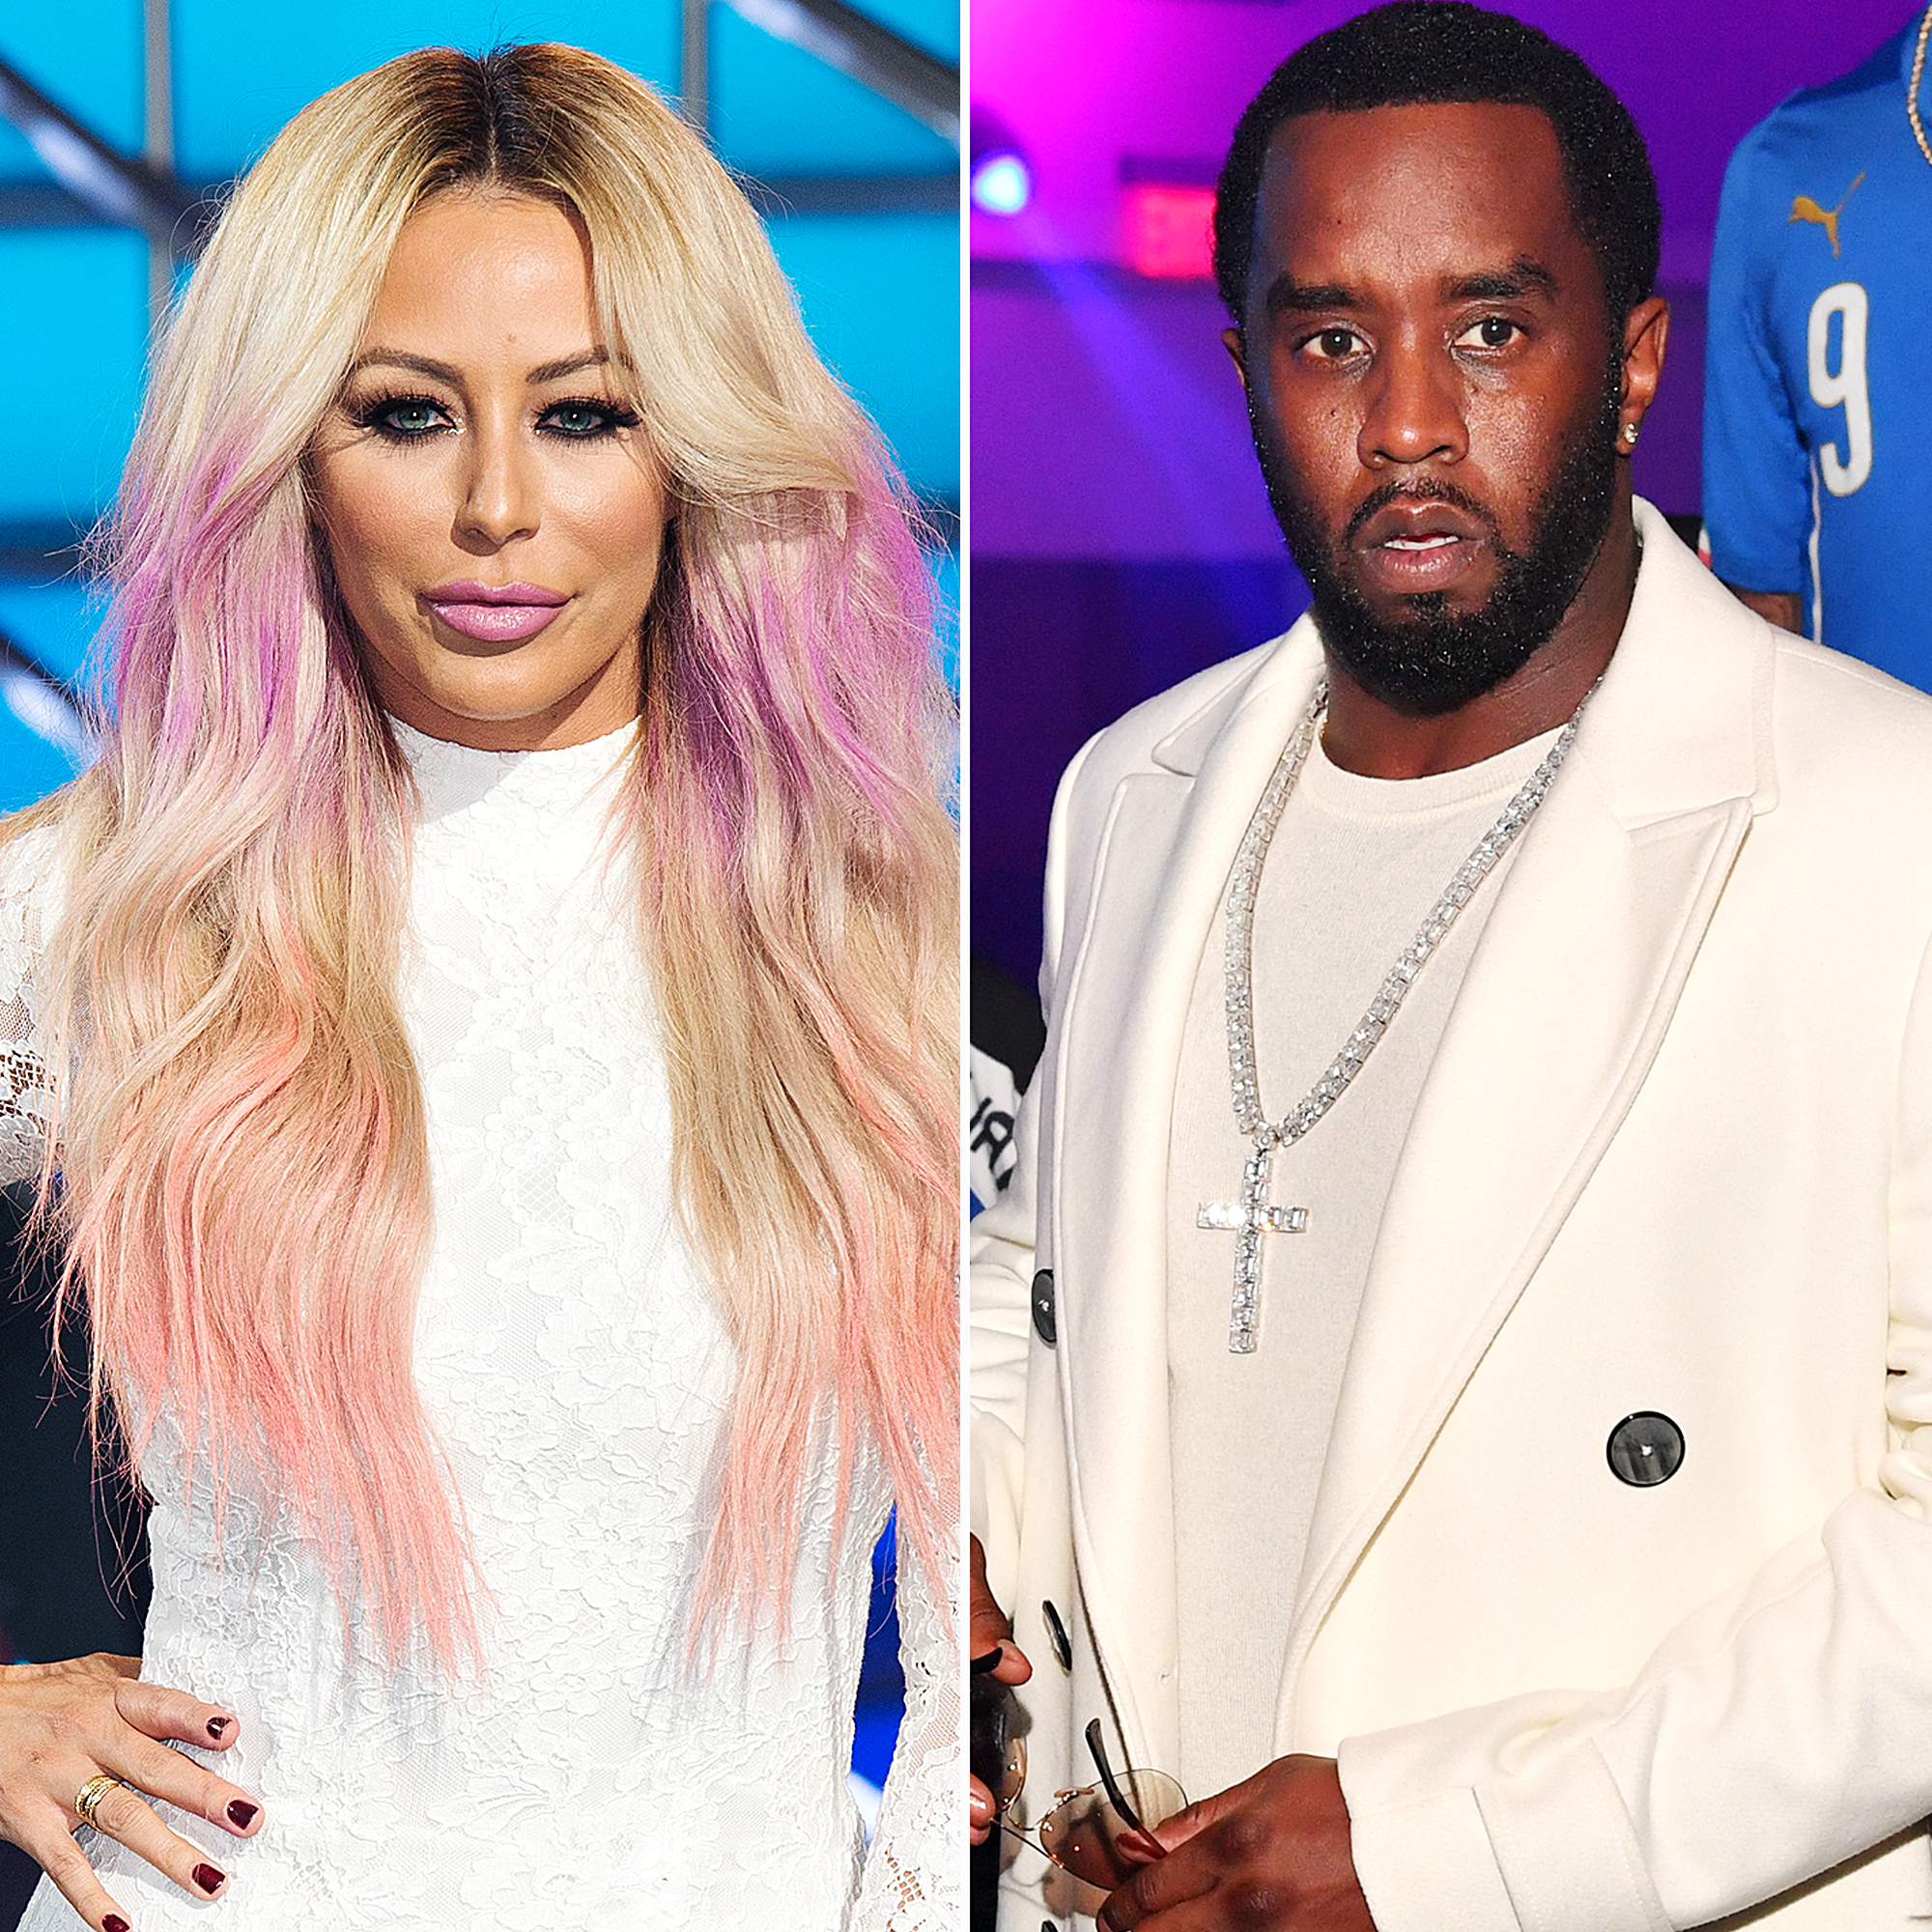 Aubrey O'Day Blames Diddy for Breaking Up Danity Kane on TV